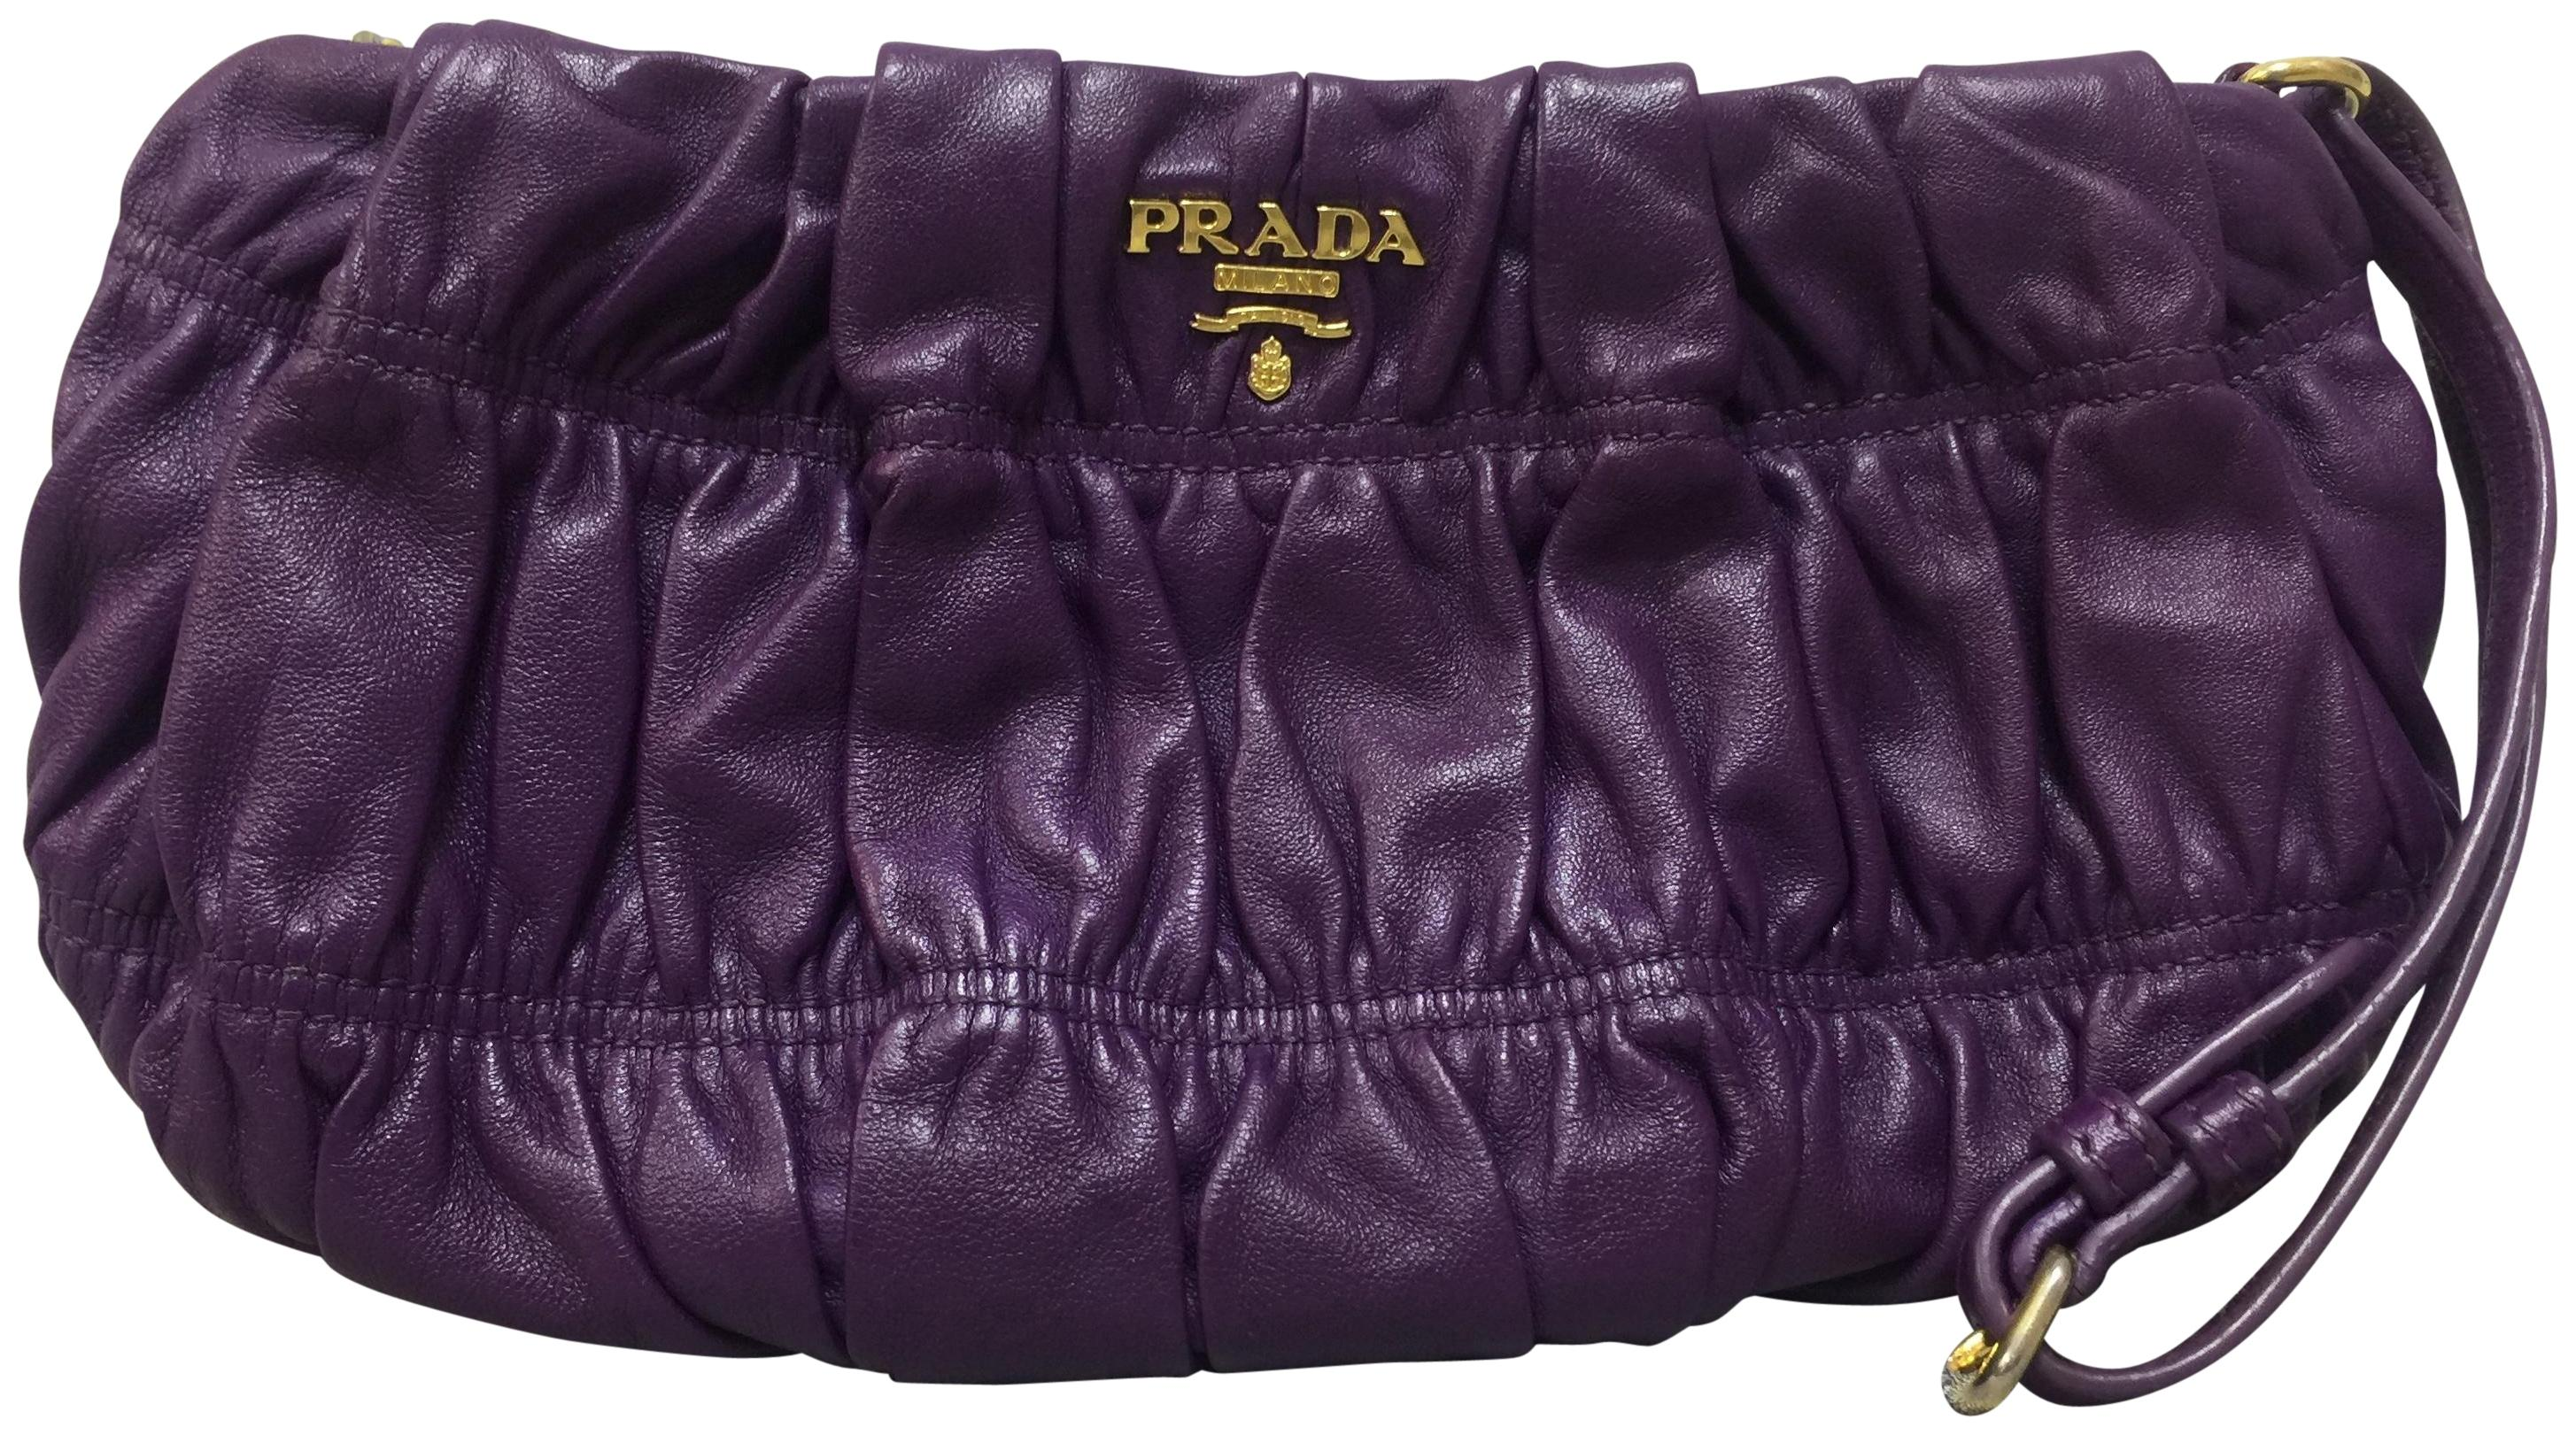 71fab0900670 ... wholesale prada wallets on sale up to 70 off at tradesy 3dae3 f0f4f